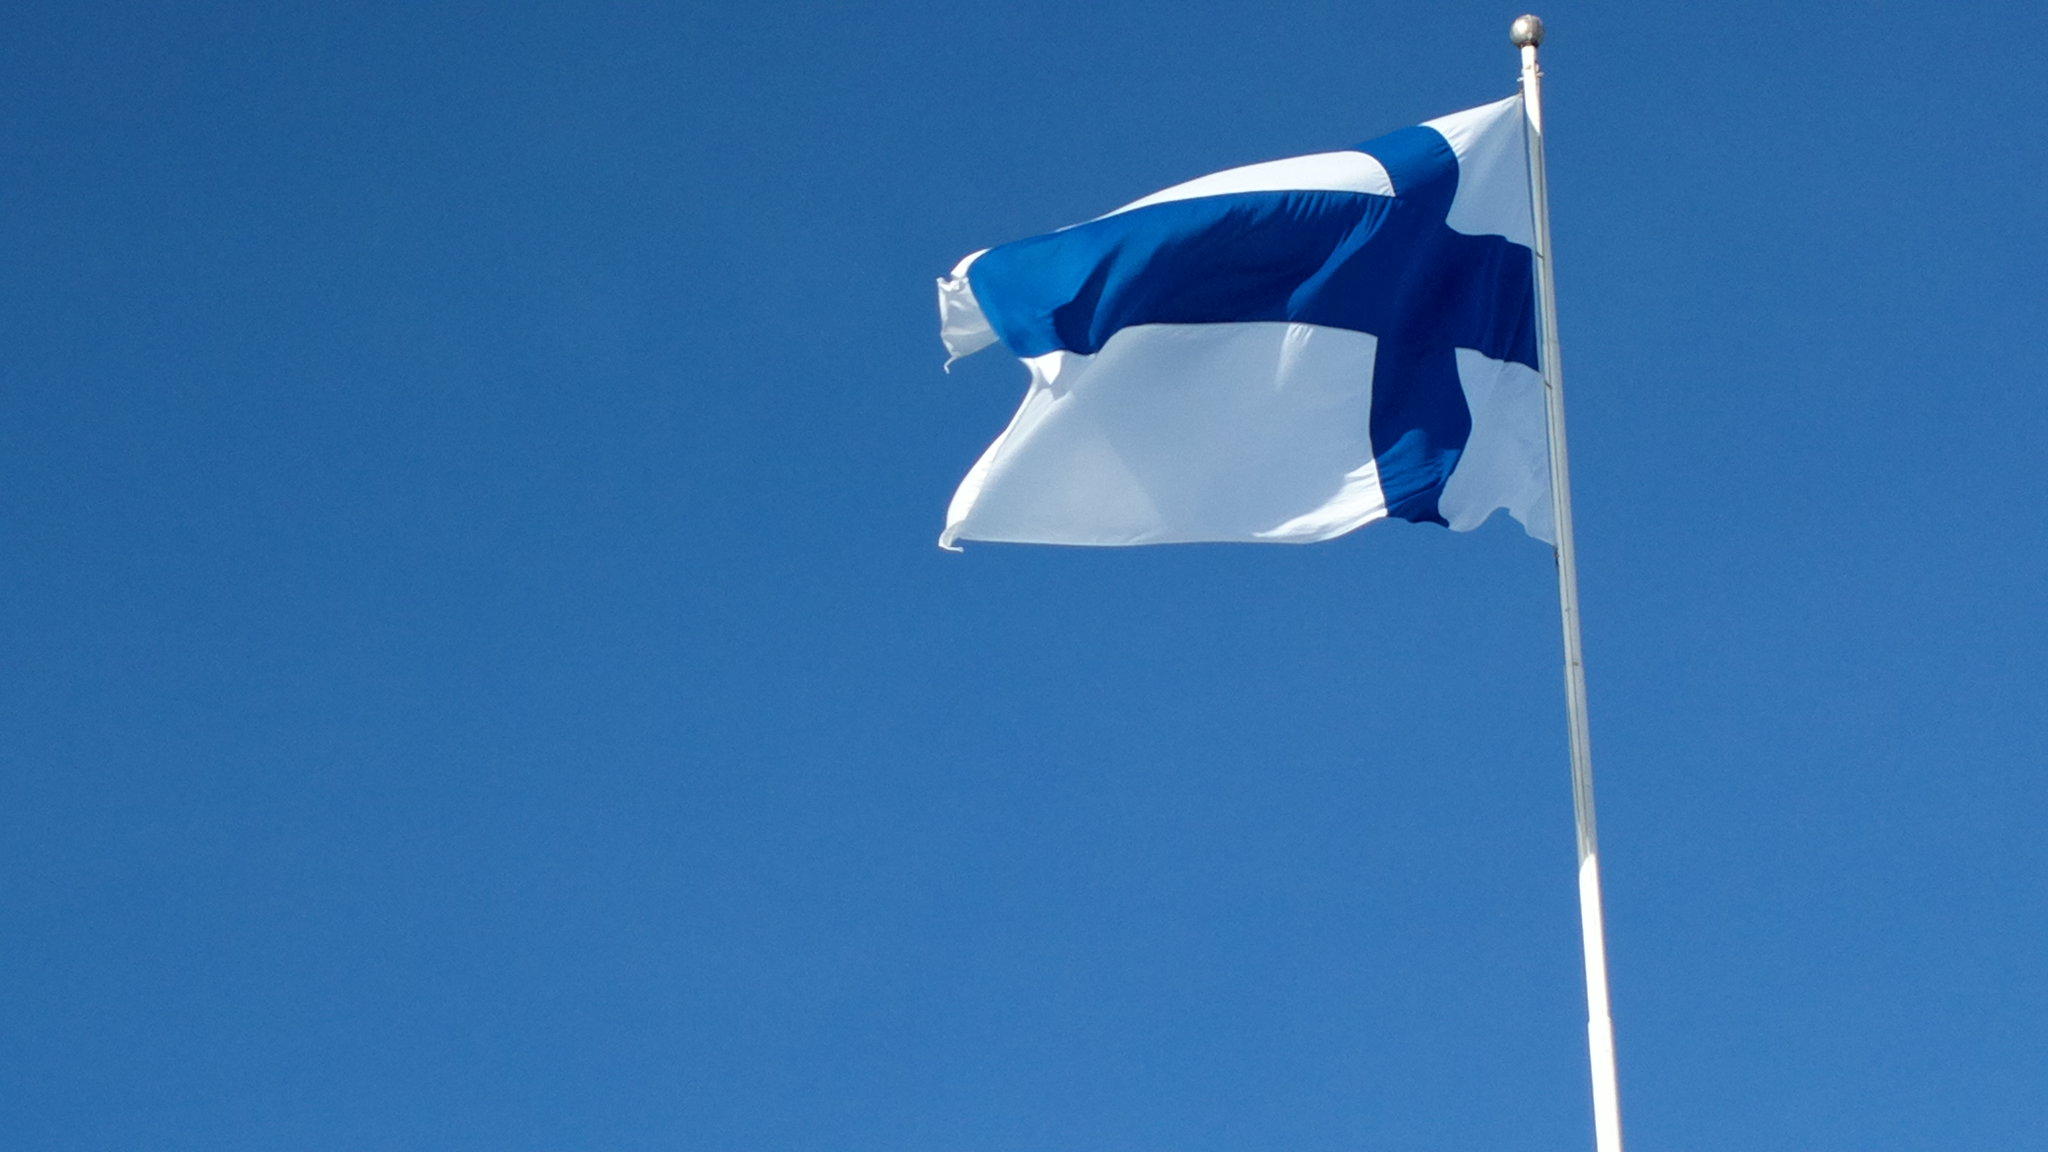 Finland to be Carbon Neutral by 2035